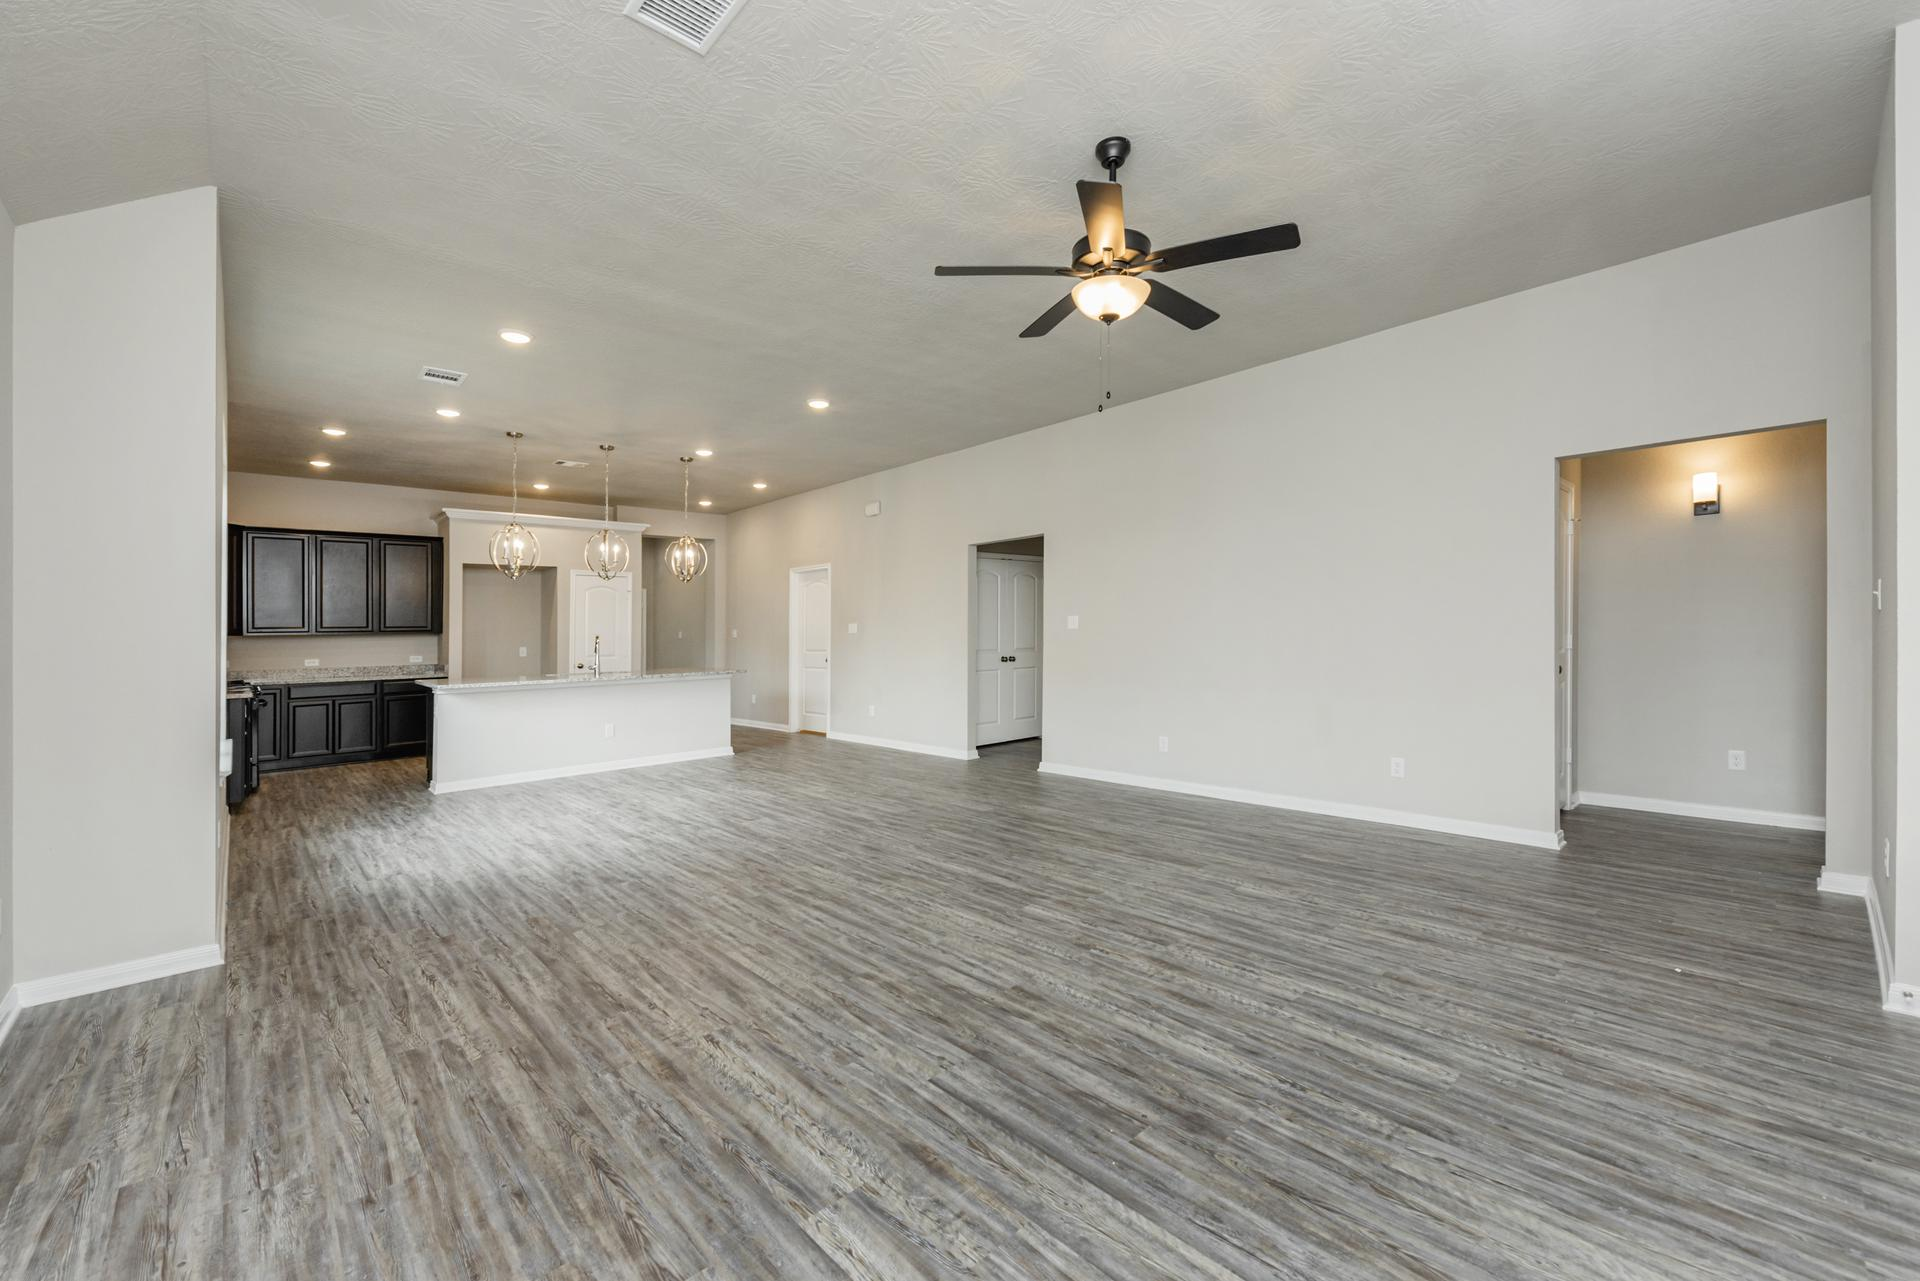 3br New Home in Willis, TX